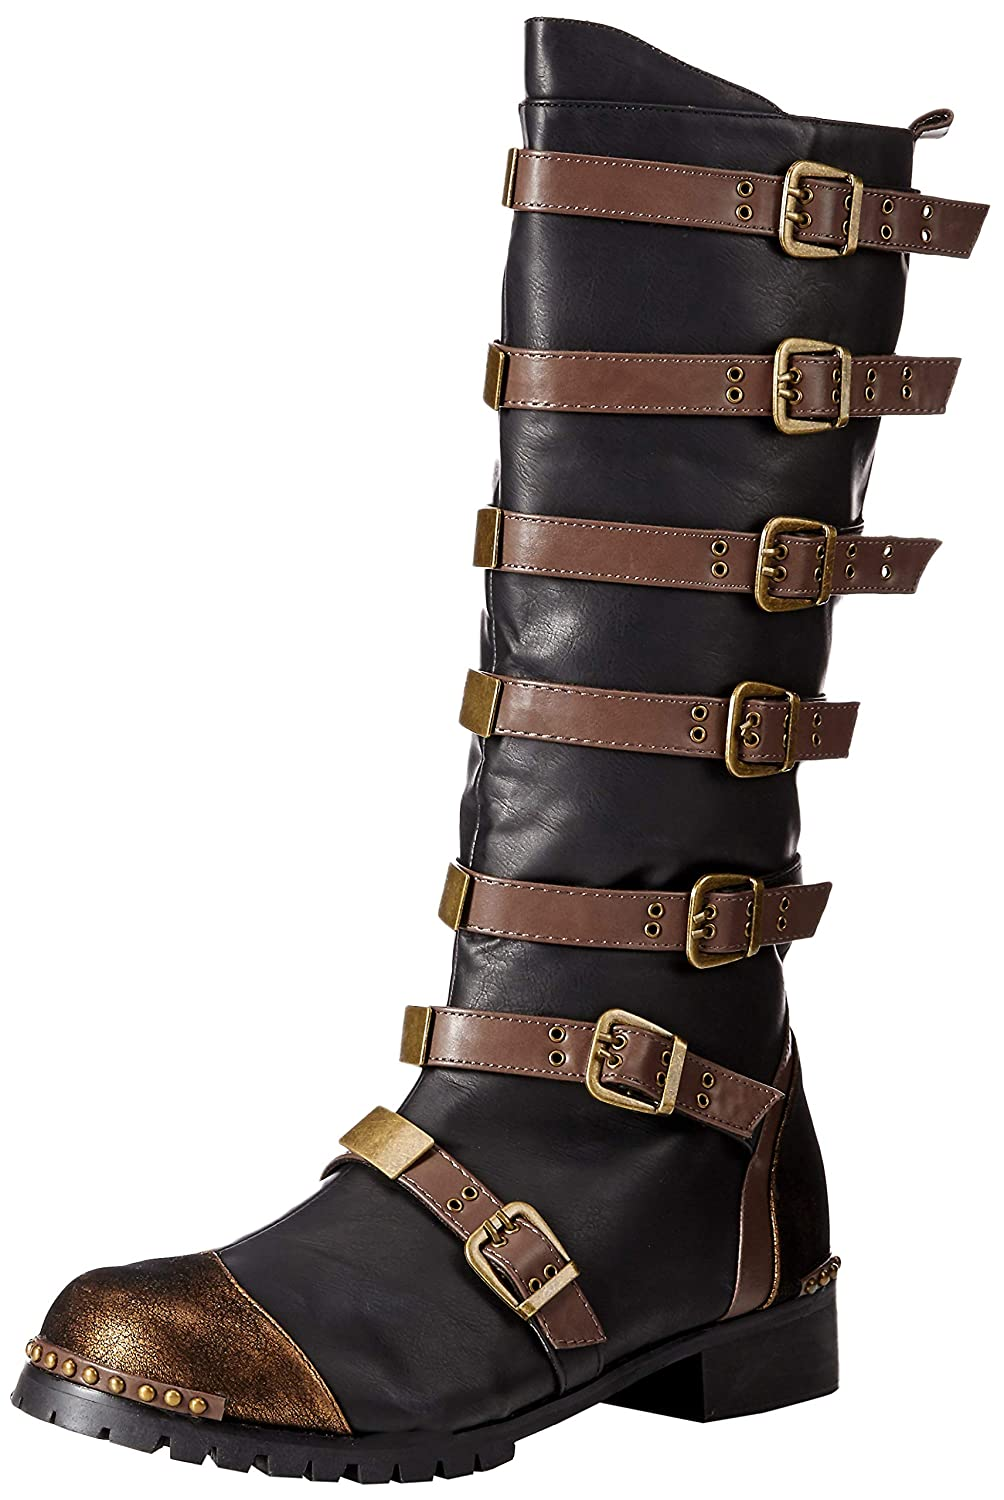 Steampunk Boots & Shoes, Heels & Flats Ellie Shoes Mens 158-punk Combat Boot $130.89 AT vintagedancer.com